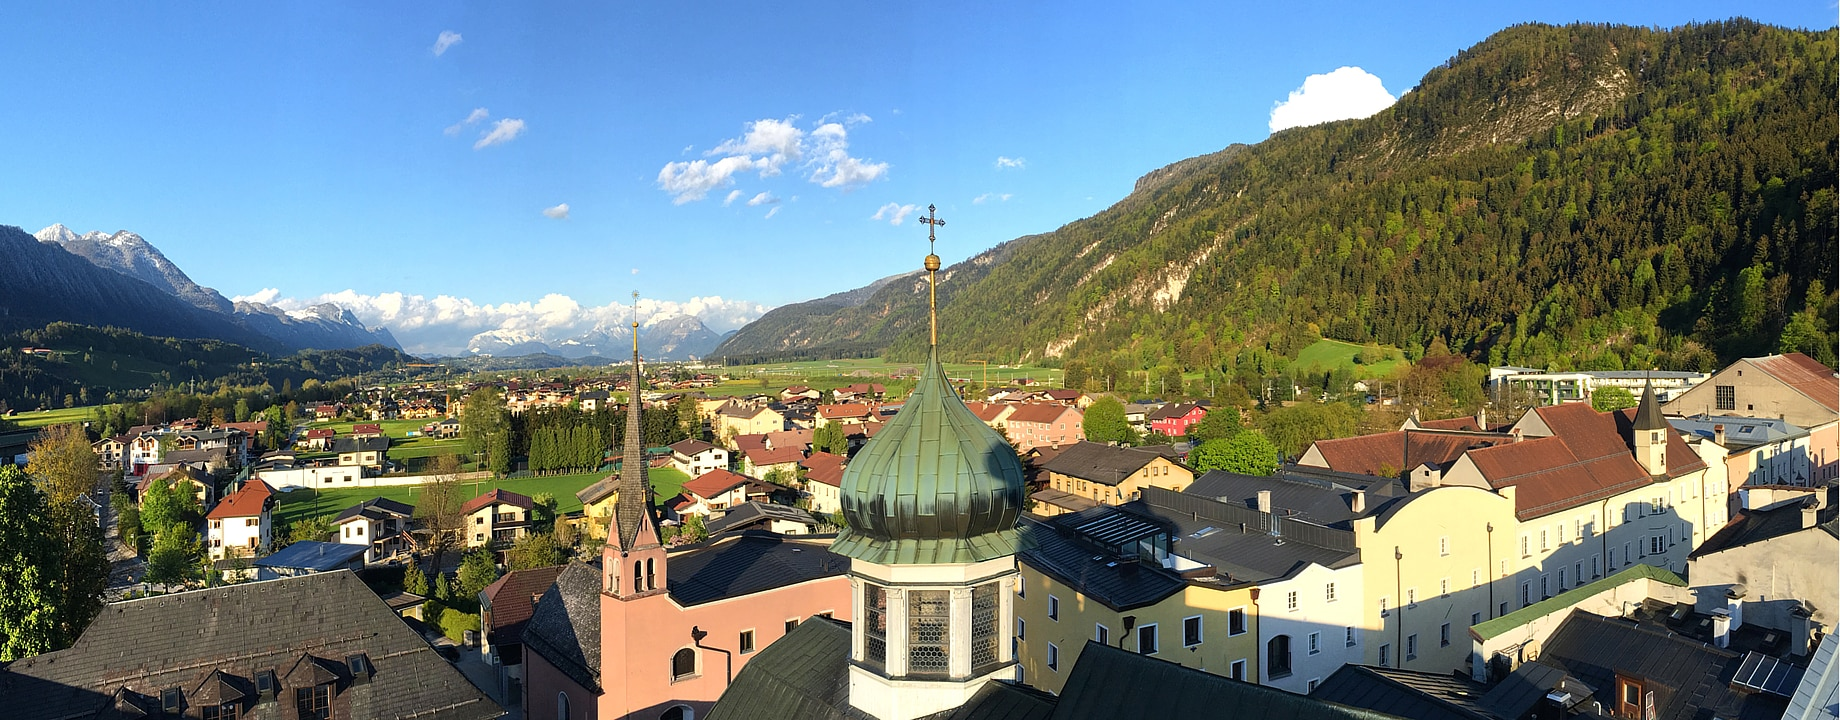 Pano sommer